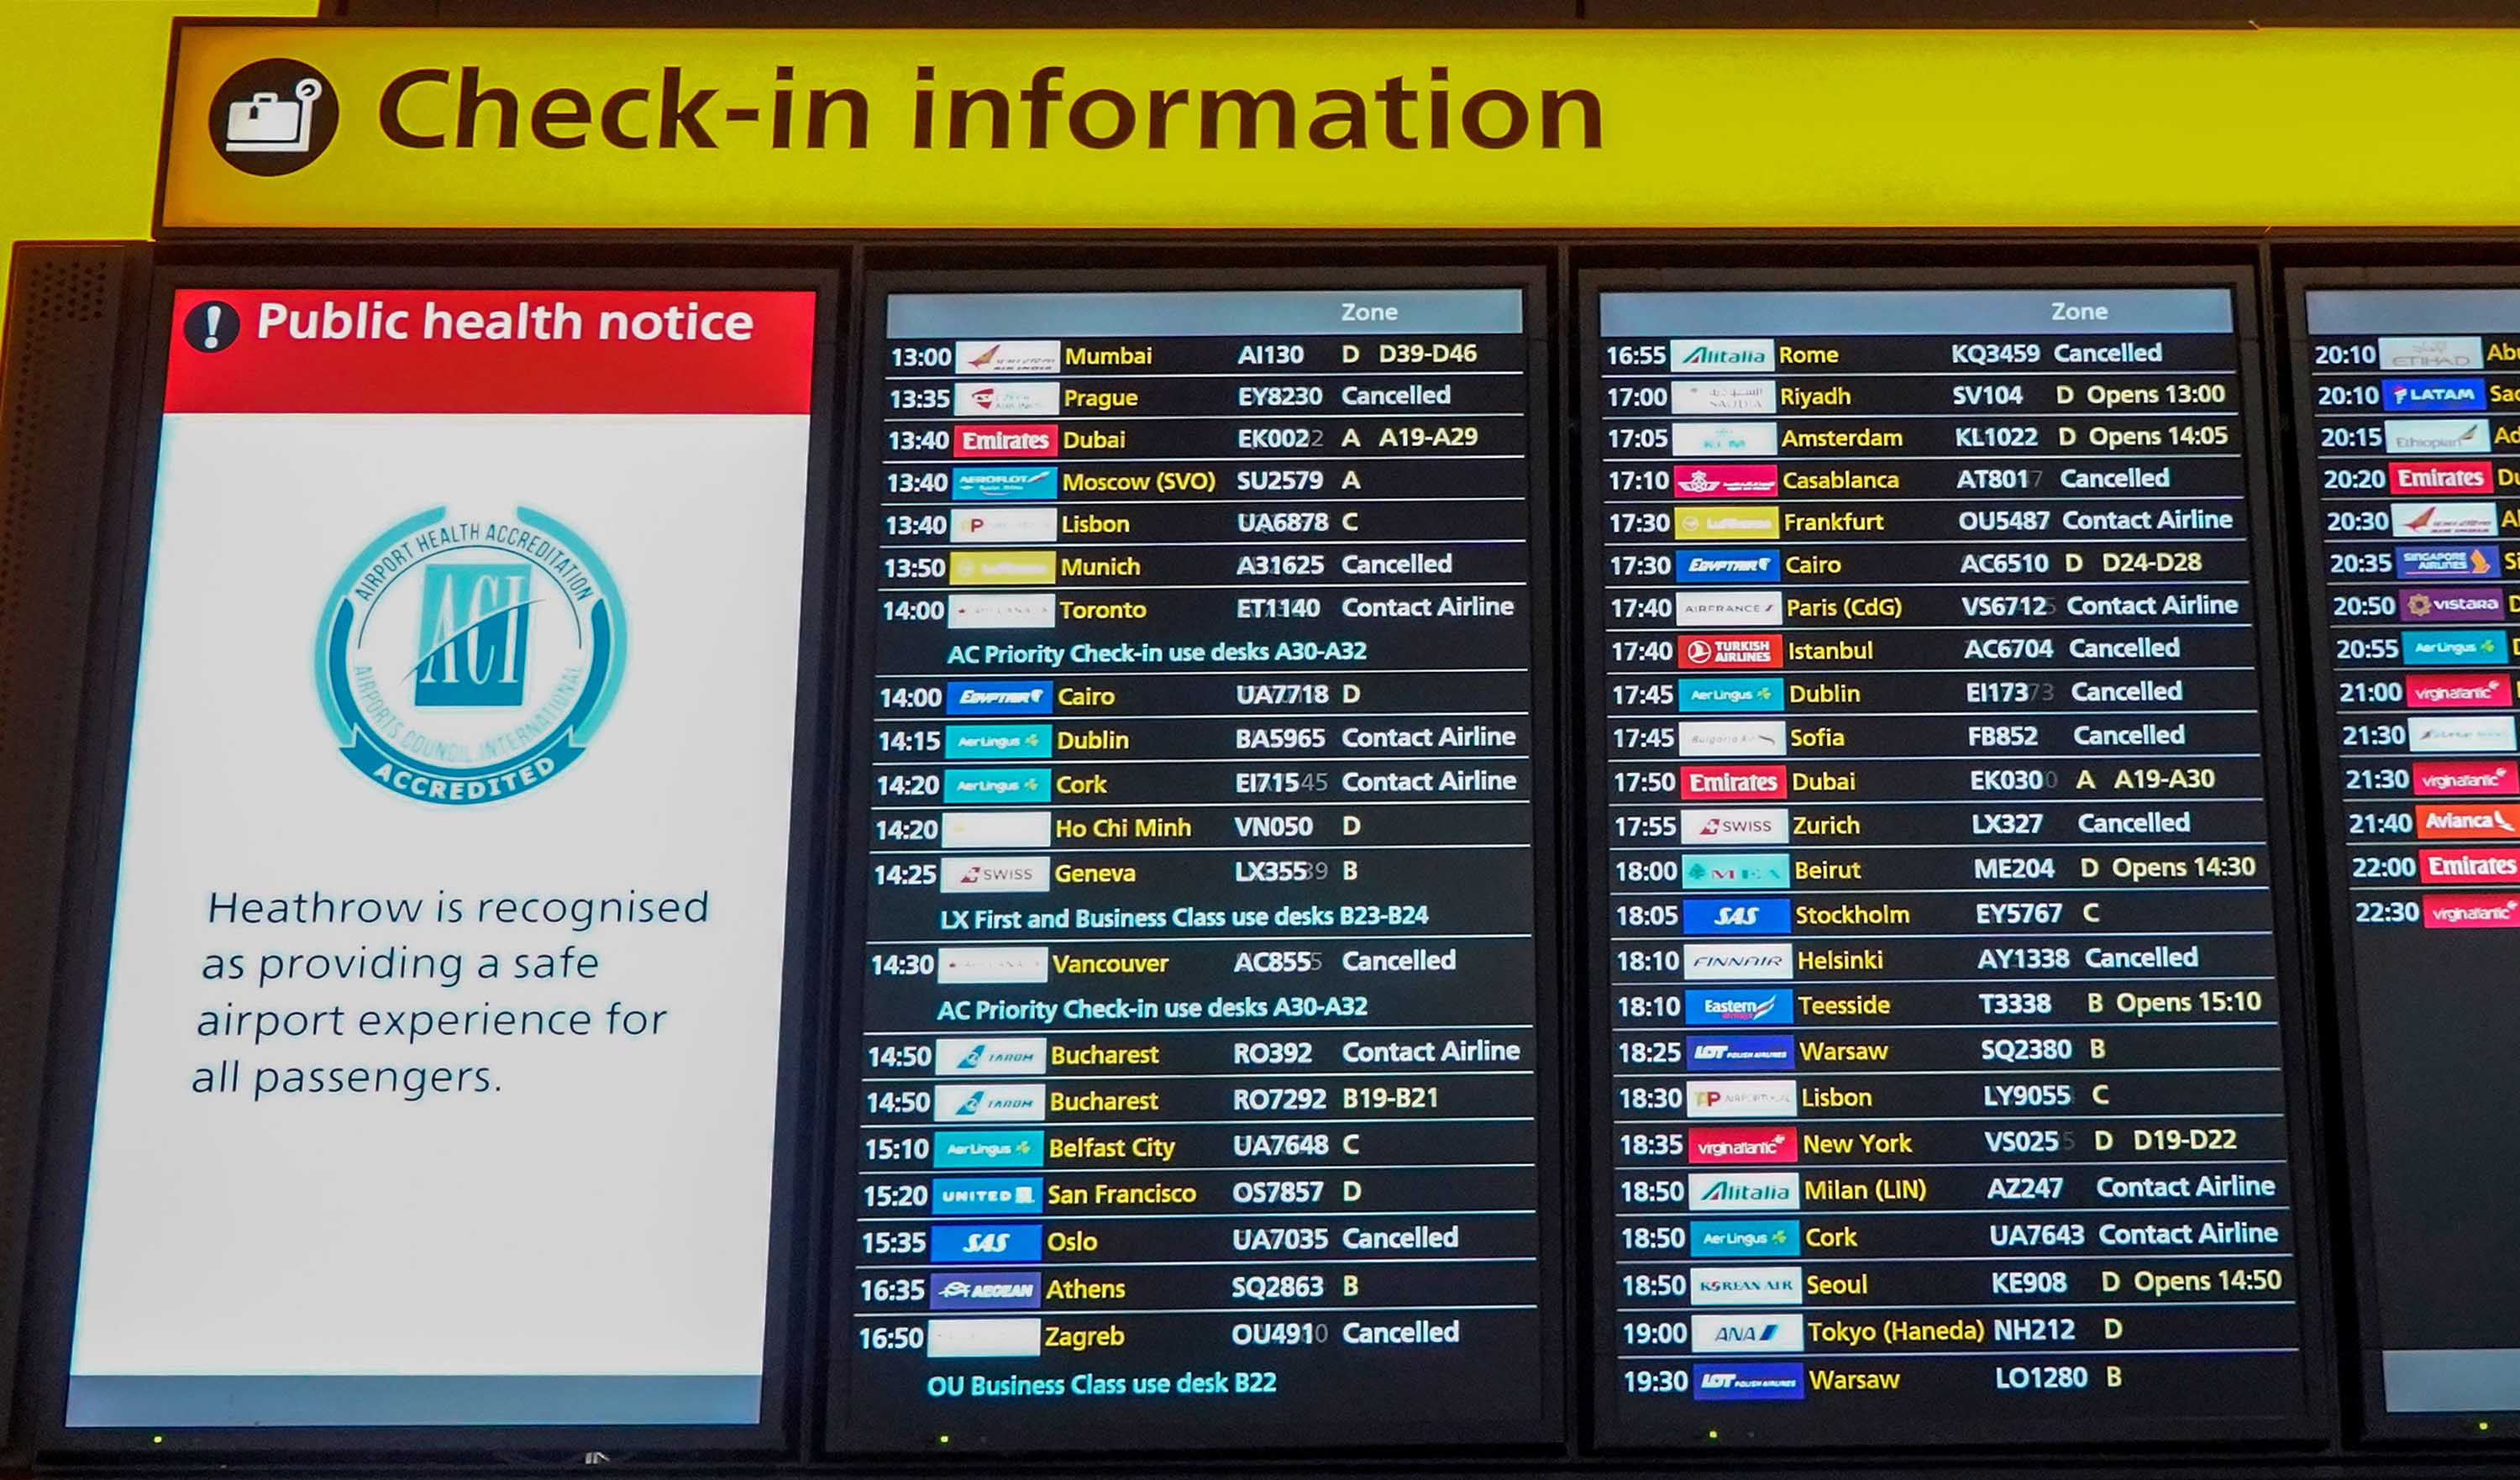 "An electronic information display board shows the ""cancelled"" status of flights, including those bound for Dublin, Istanbul, and Munich among others, in the departures hall at Terminal 2 of Heathrow Airport in London, on December 21."